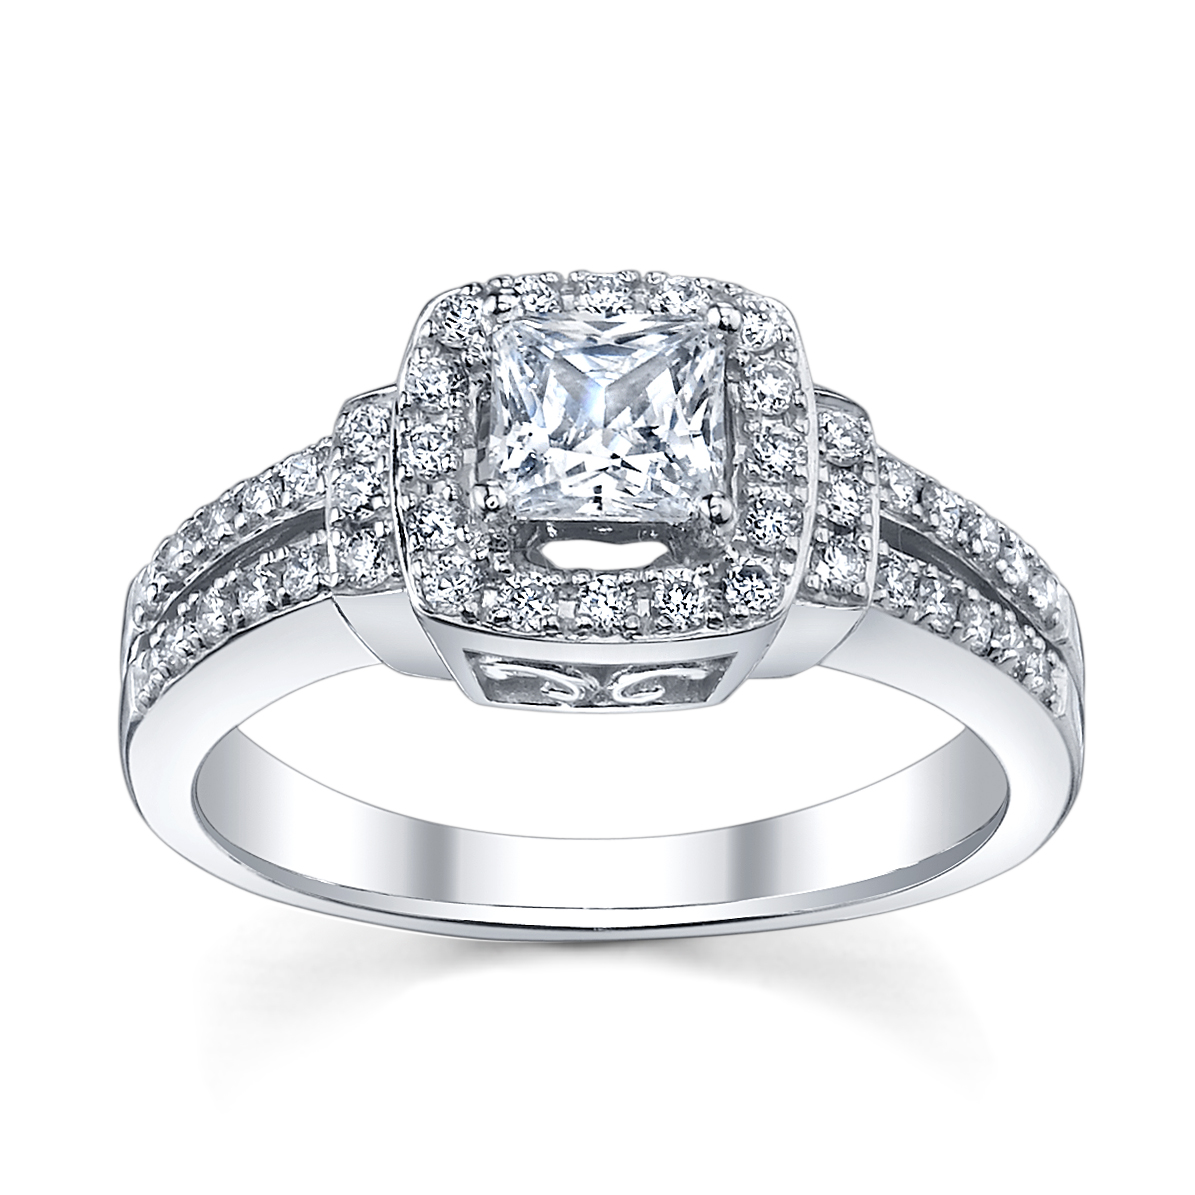 stores best at beautiful bands rings of engagement ring tips and unique on ing exclusive nice decoration affordable wedding